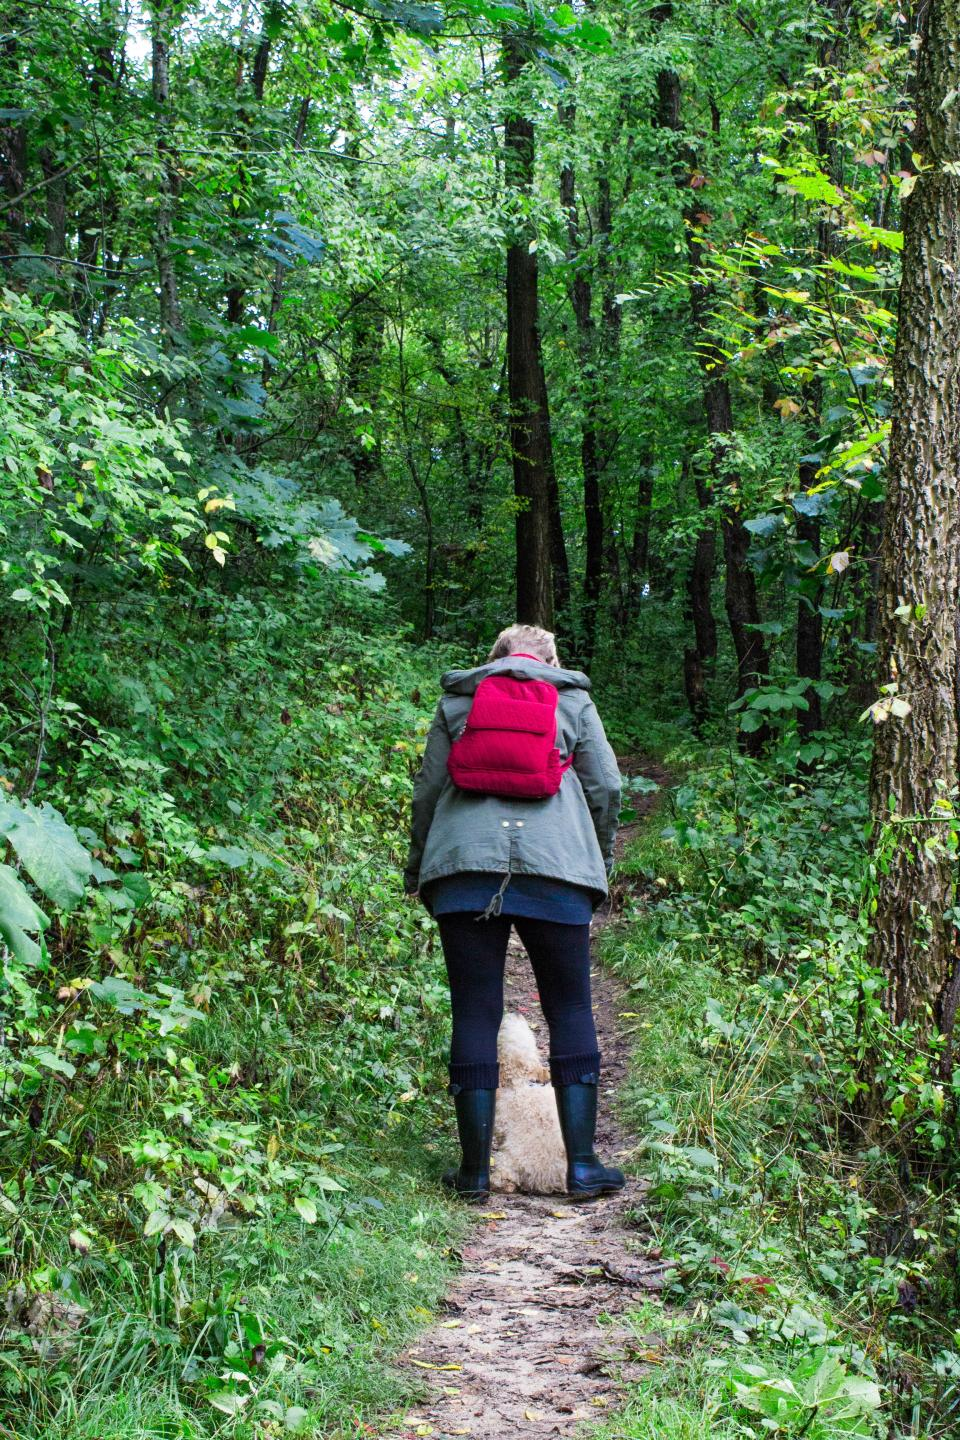 people, woman, walking, dog, puppy, pet, animal, path, green, grass, trees, plant, forest, travel, outdoor, adventure, hiking